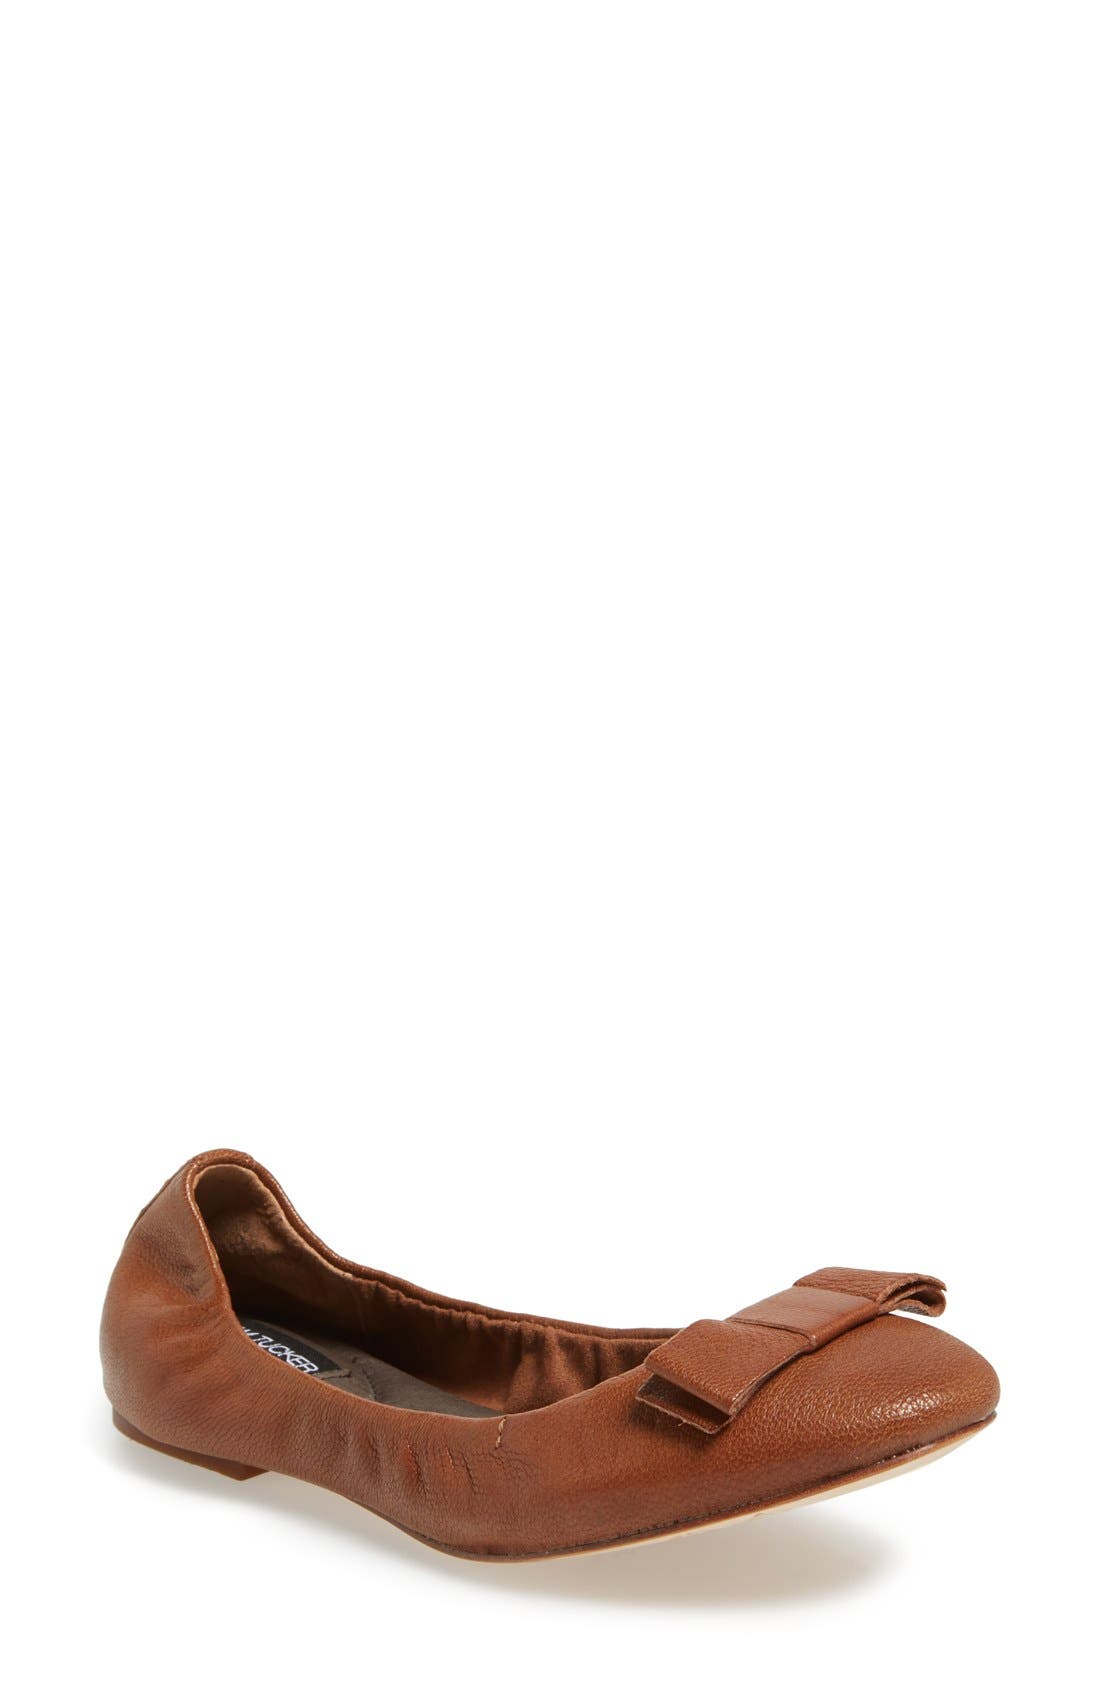 Alternate Image 1 Selected - Adam Tucker Me Too 'Prescott' Leather Ballet Flat (Women)